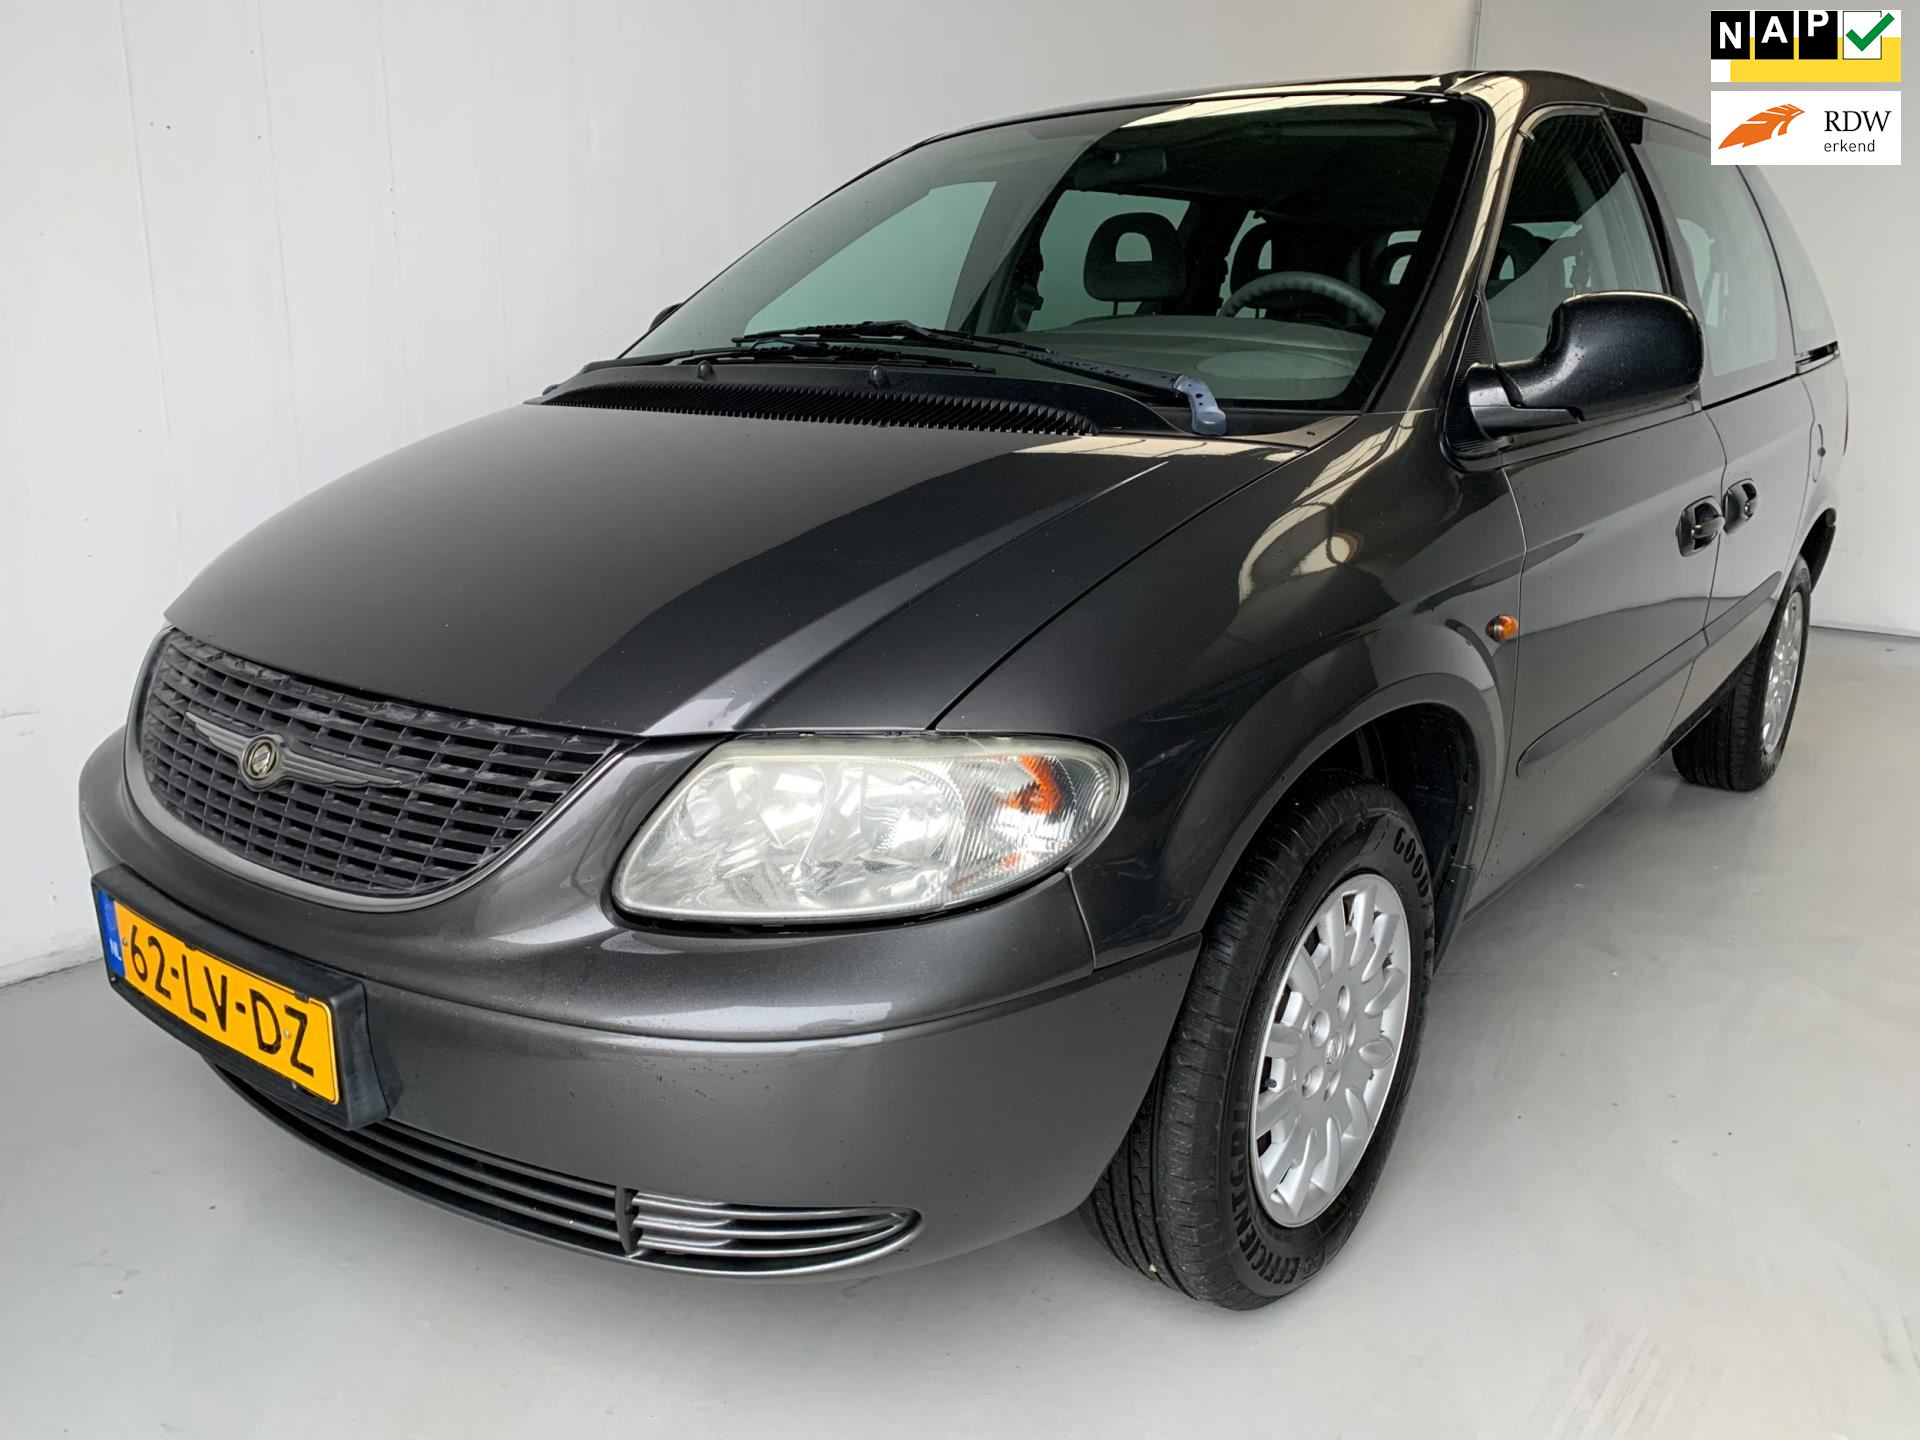 Chrysler Grand Voyager occasion - Autobedrijf Leeuwis B.V.